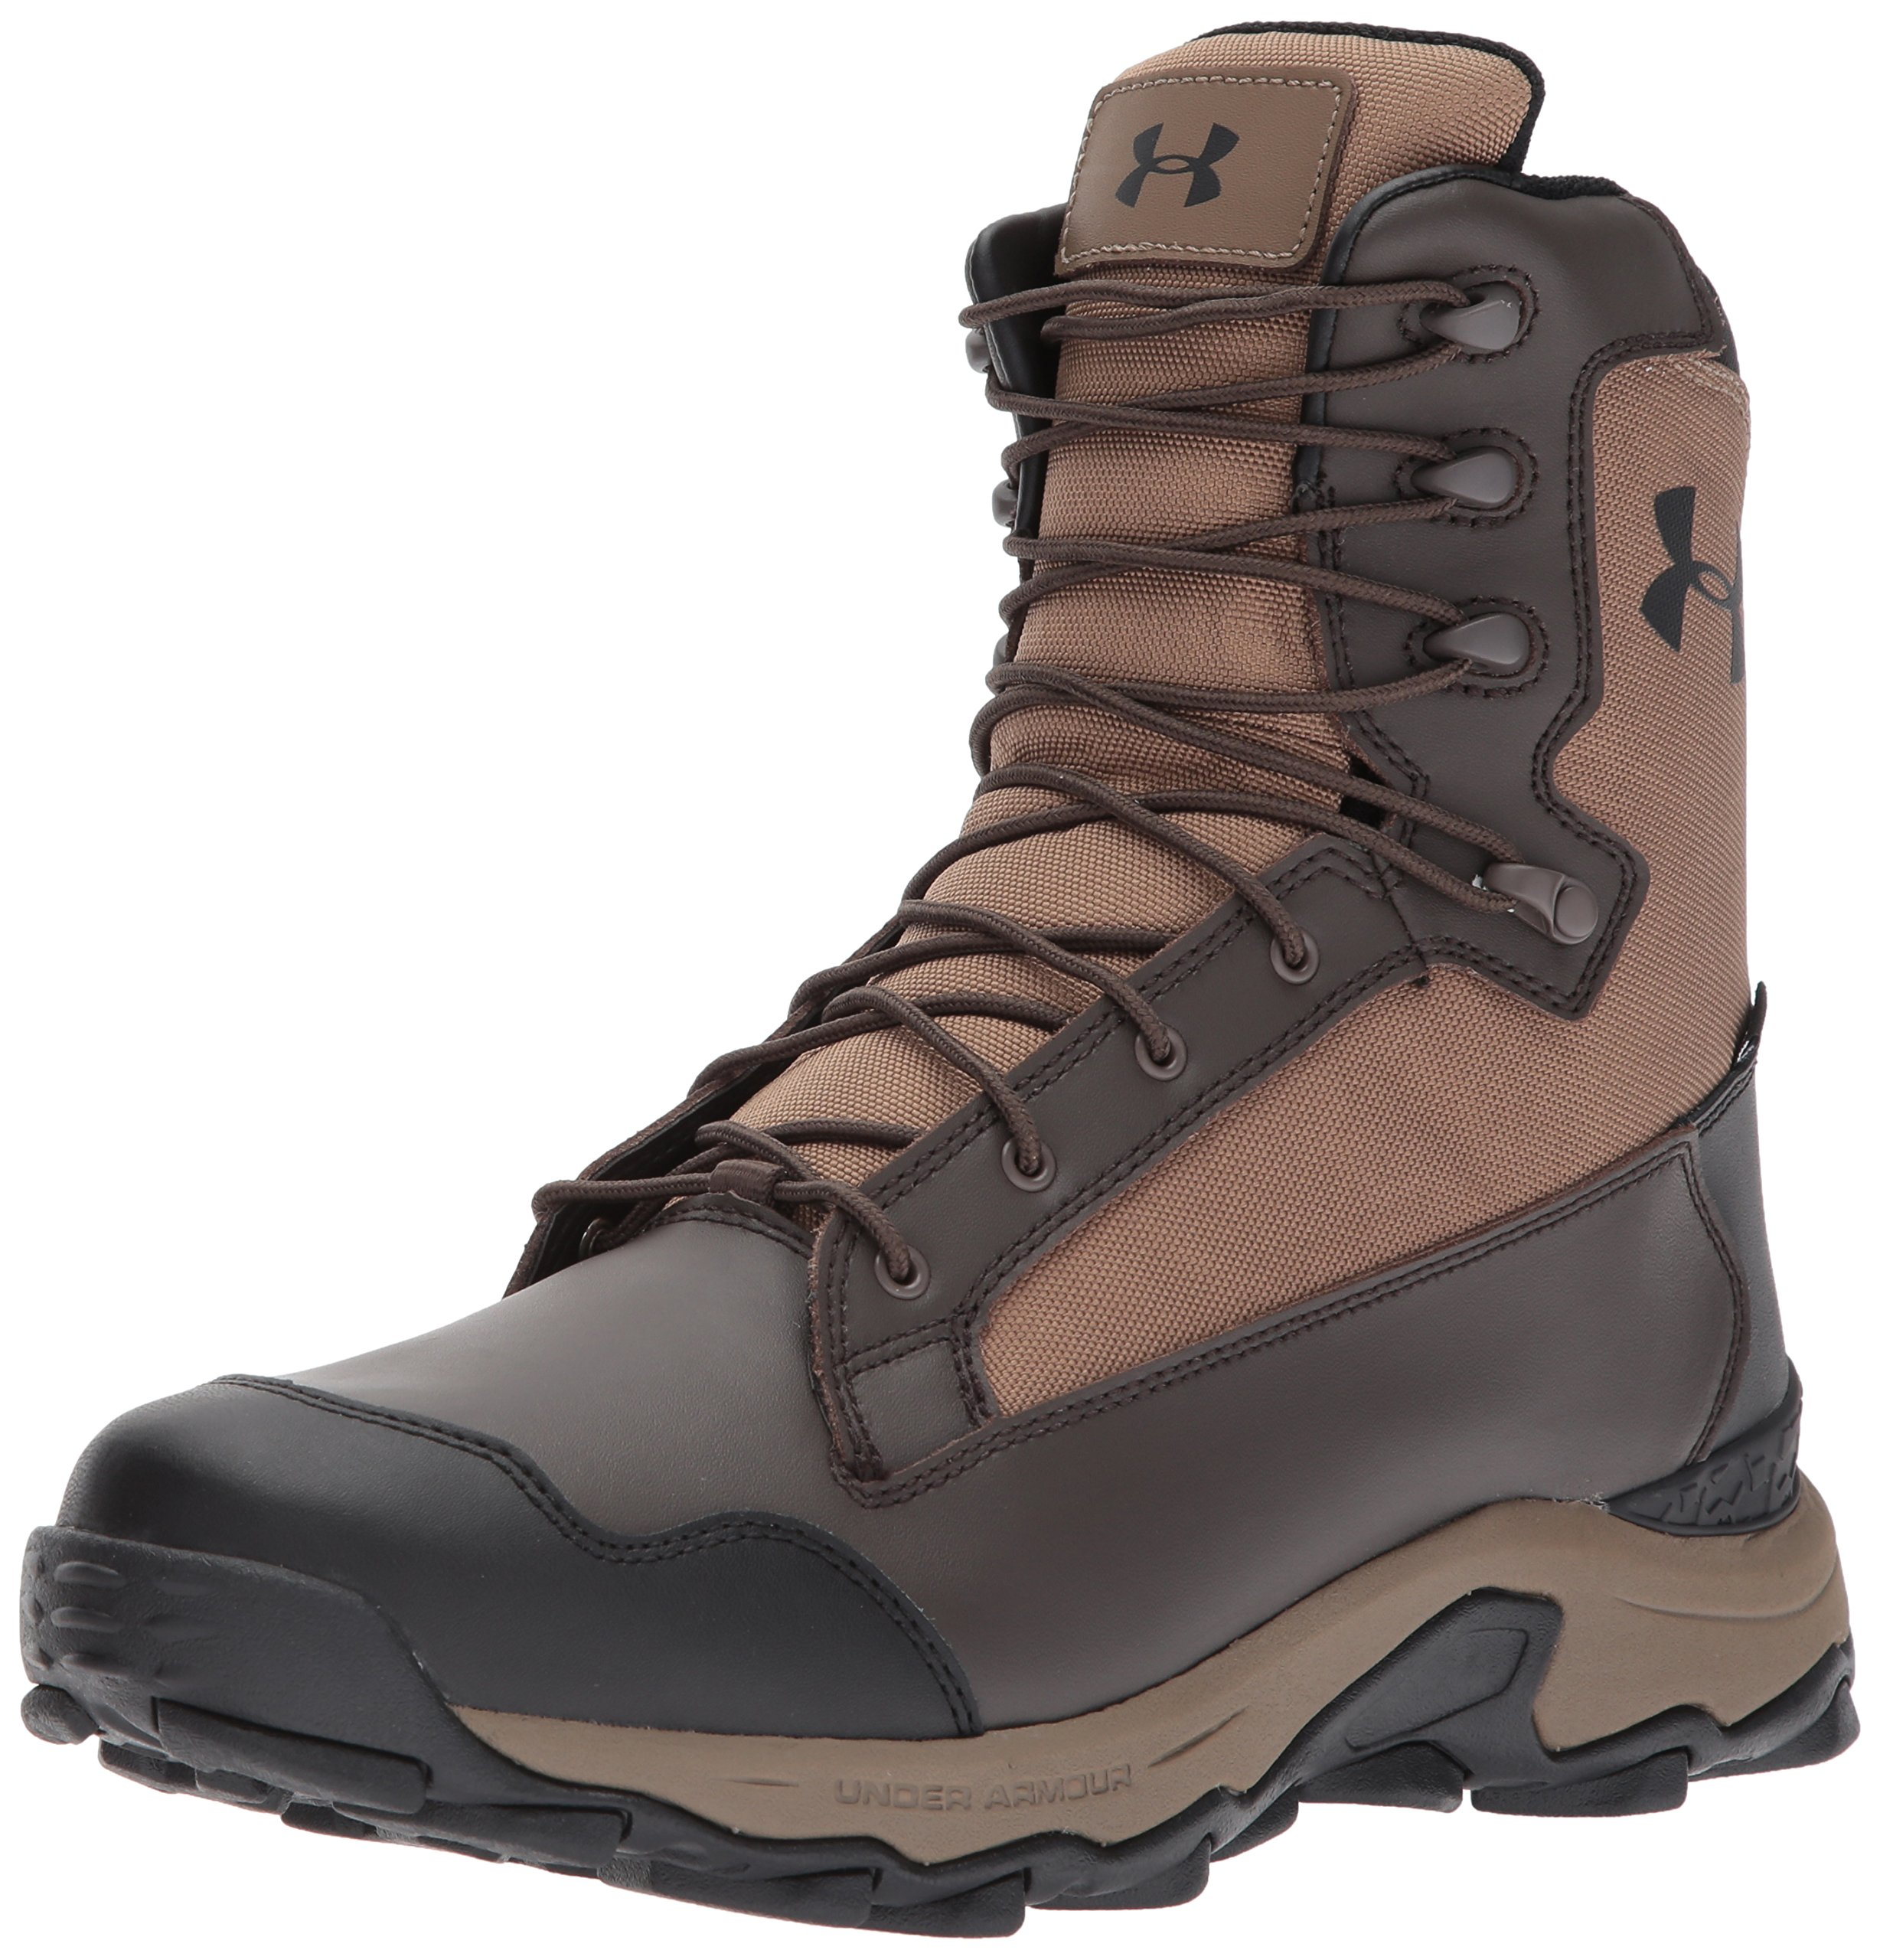 Under Armour Men's Tanger Waterproof-400G Ankle Boot, Uniform (225)/Maverick Brown, 9